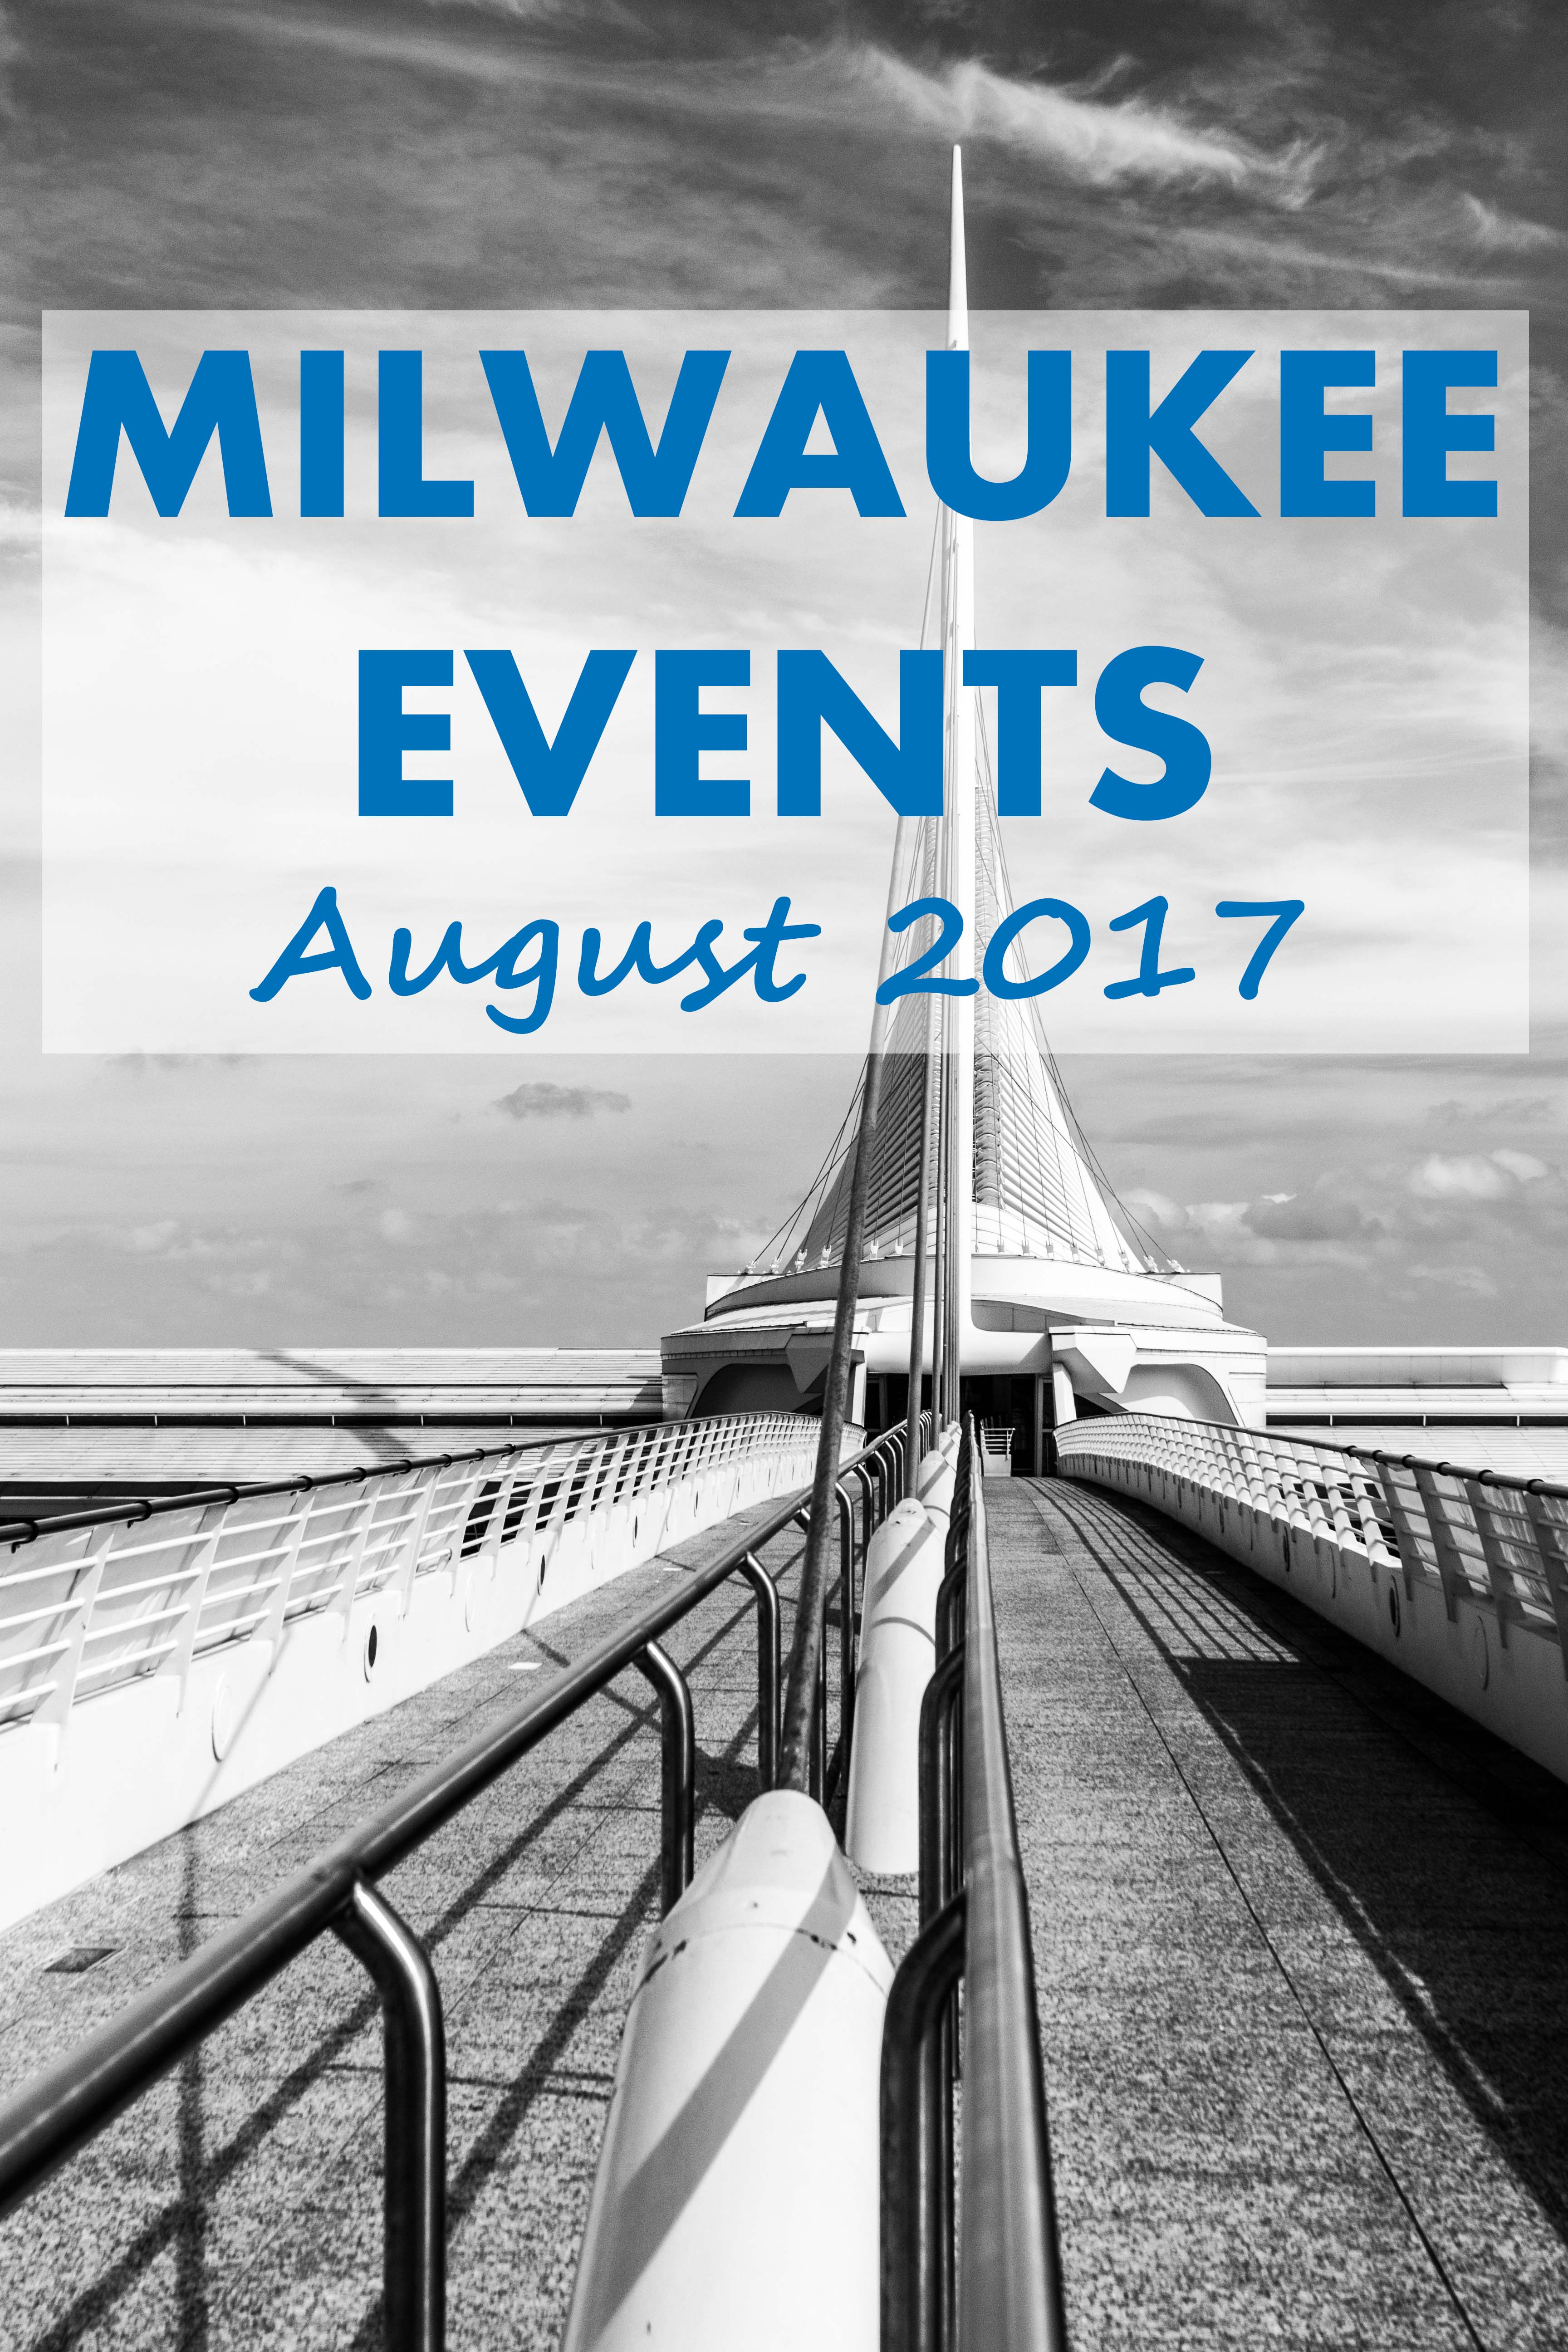 Milwaukee Events - August 2017 | https://www.roseclearfield.com